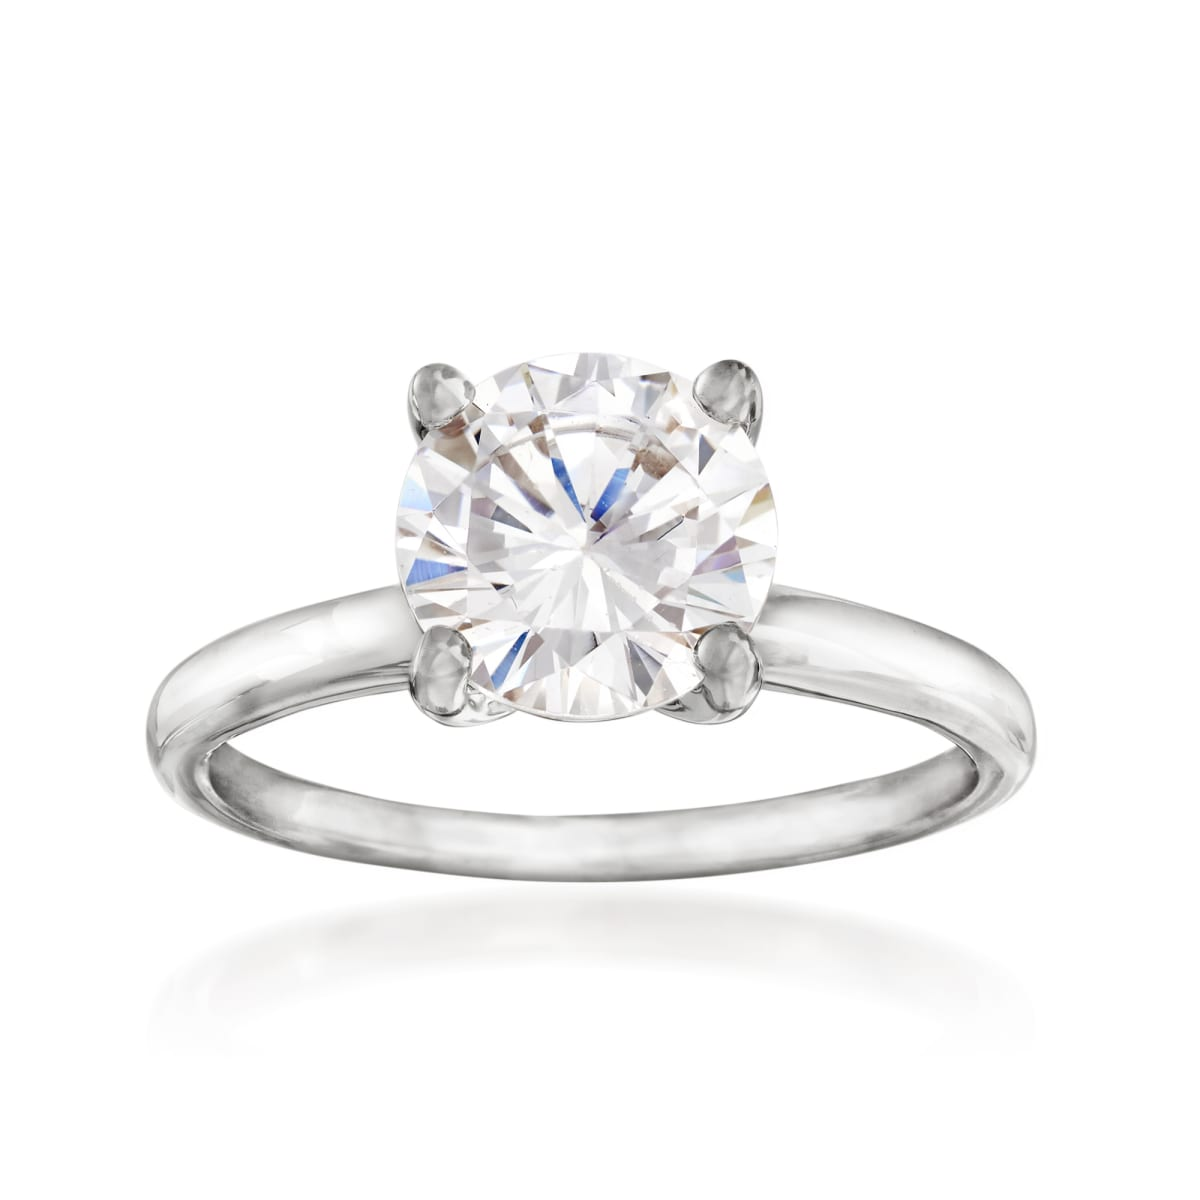 Details about  /14k Yellow OR White Gold Round Engagement CZ Ring Solitaire CZ Bow Tie Band Pave